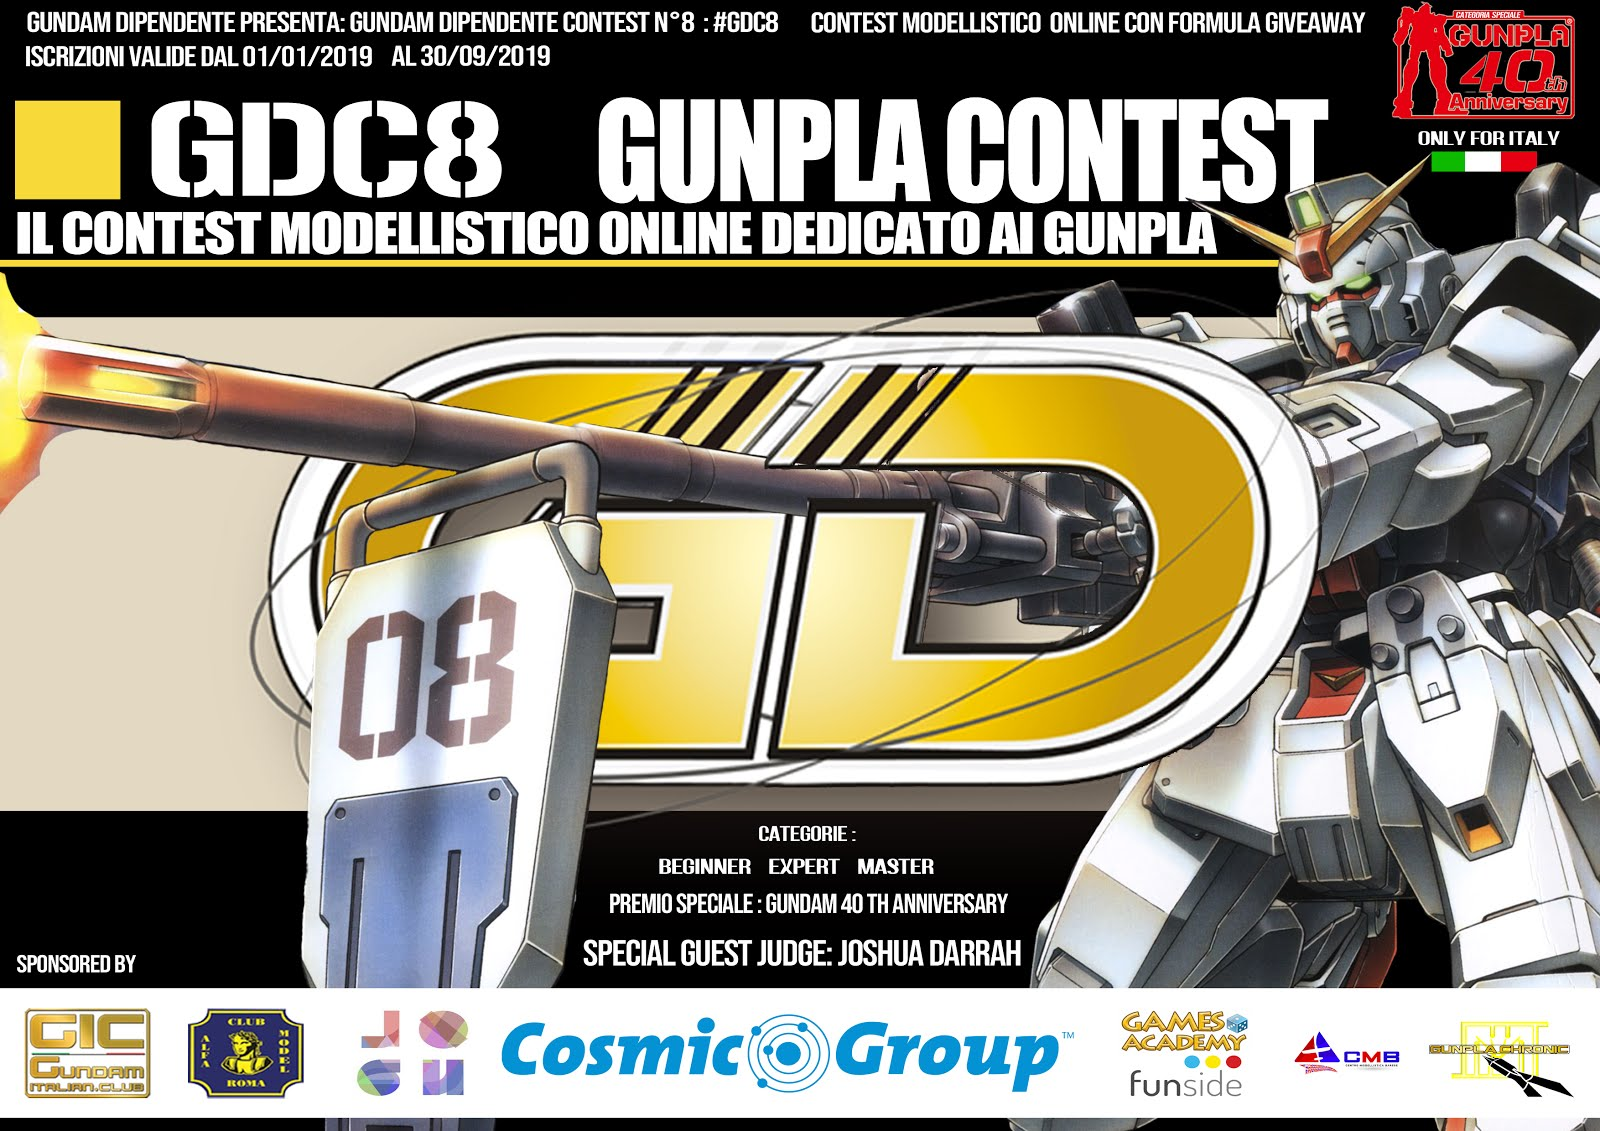 GD GUNPLA CONTEST 2019